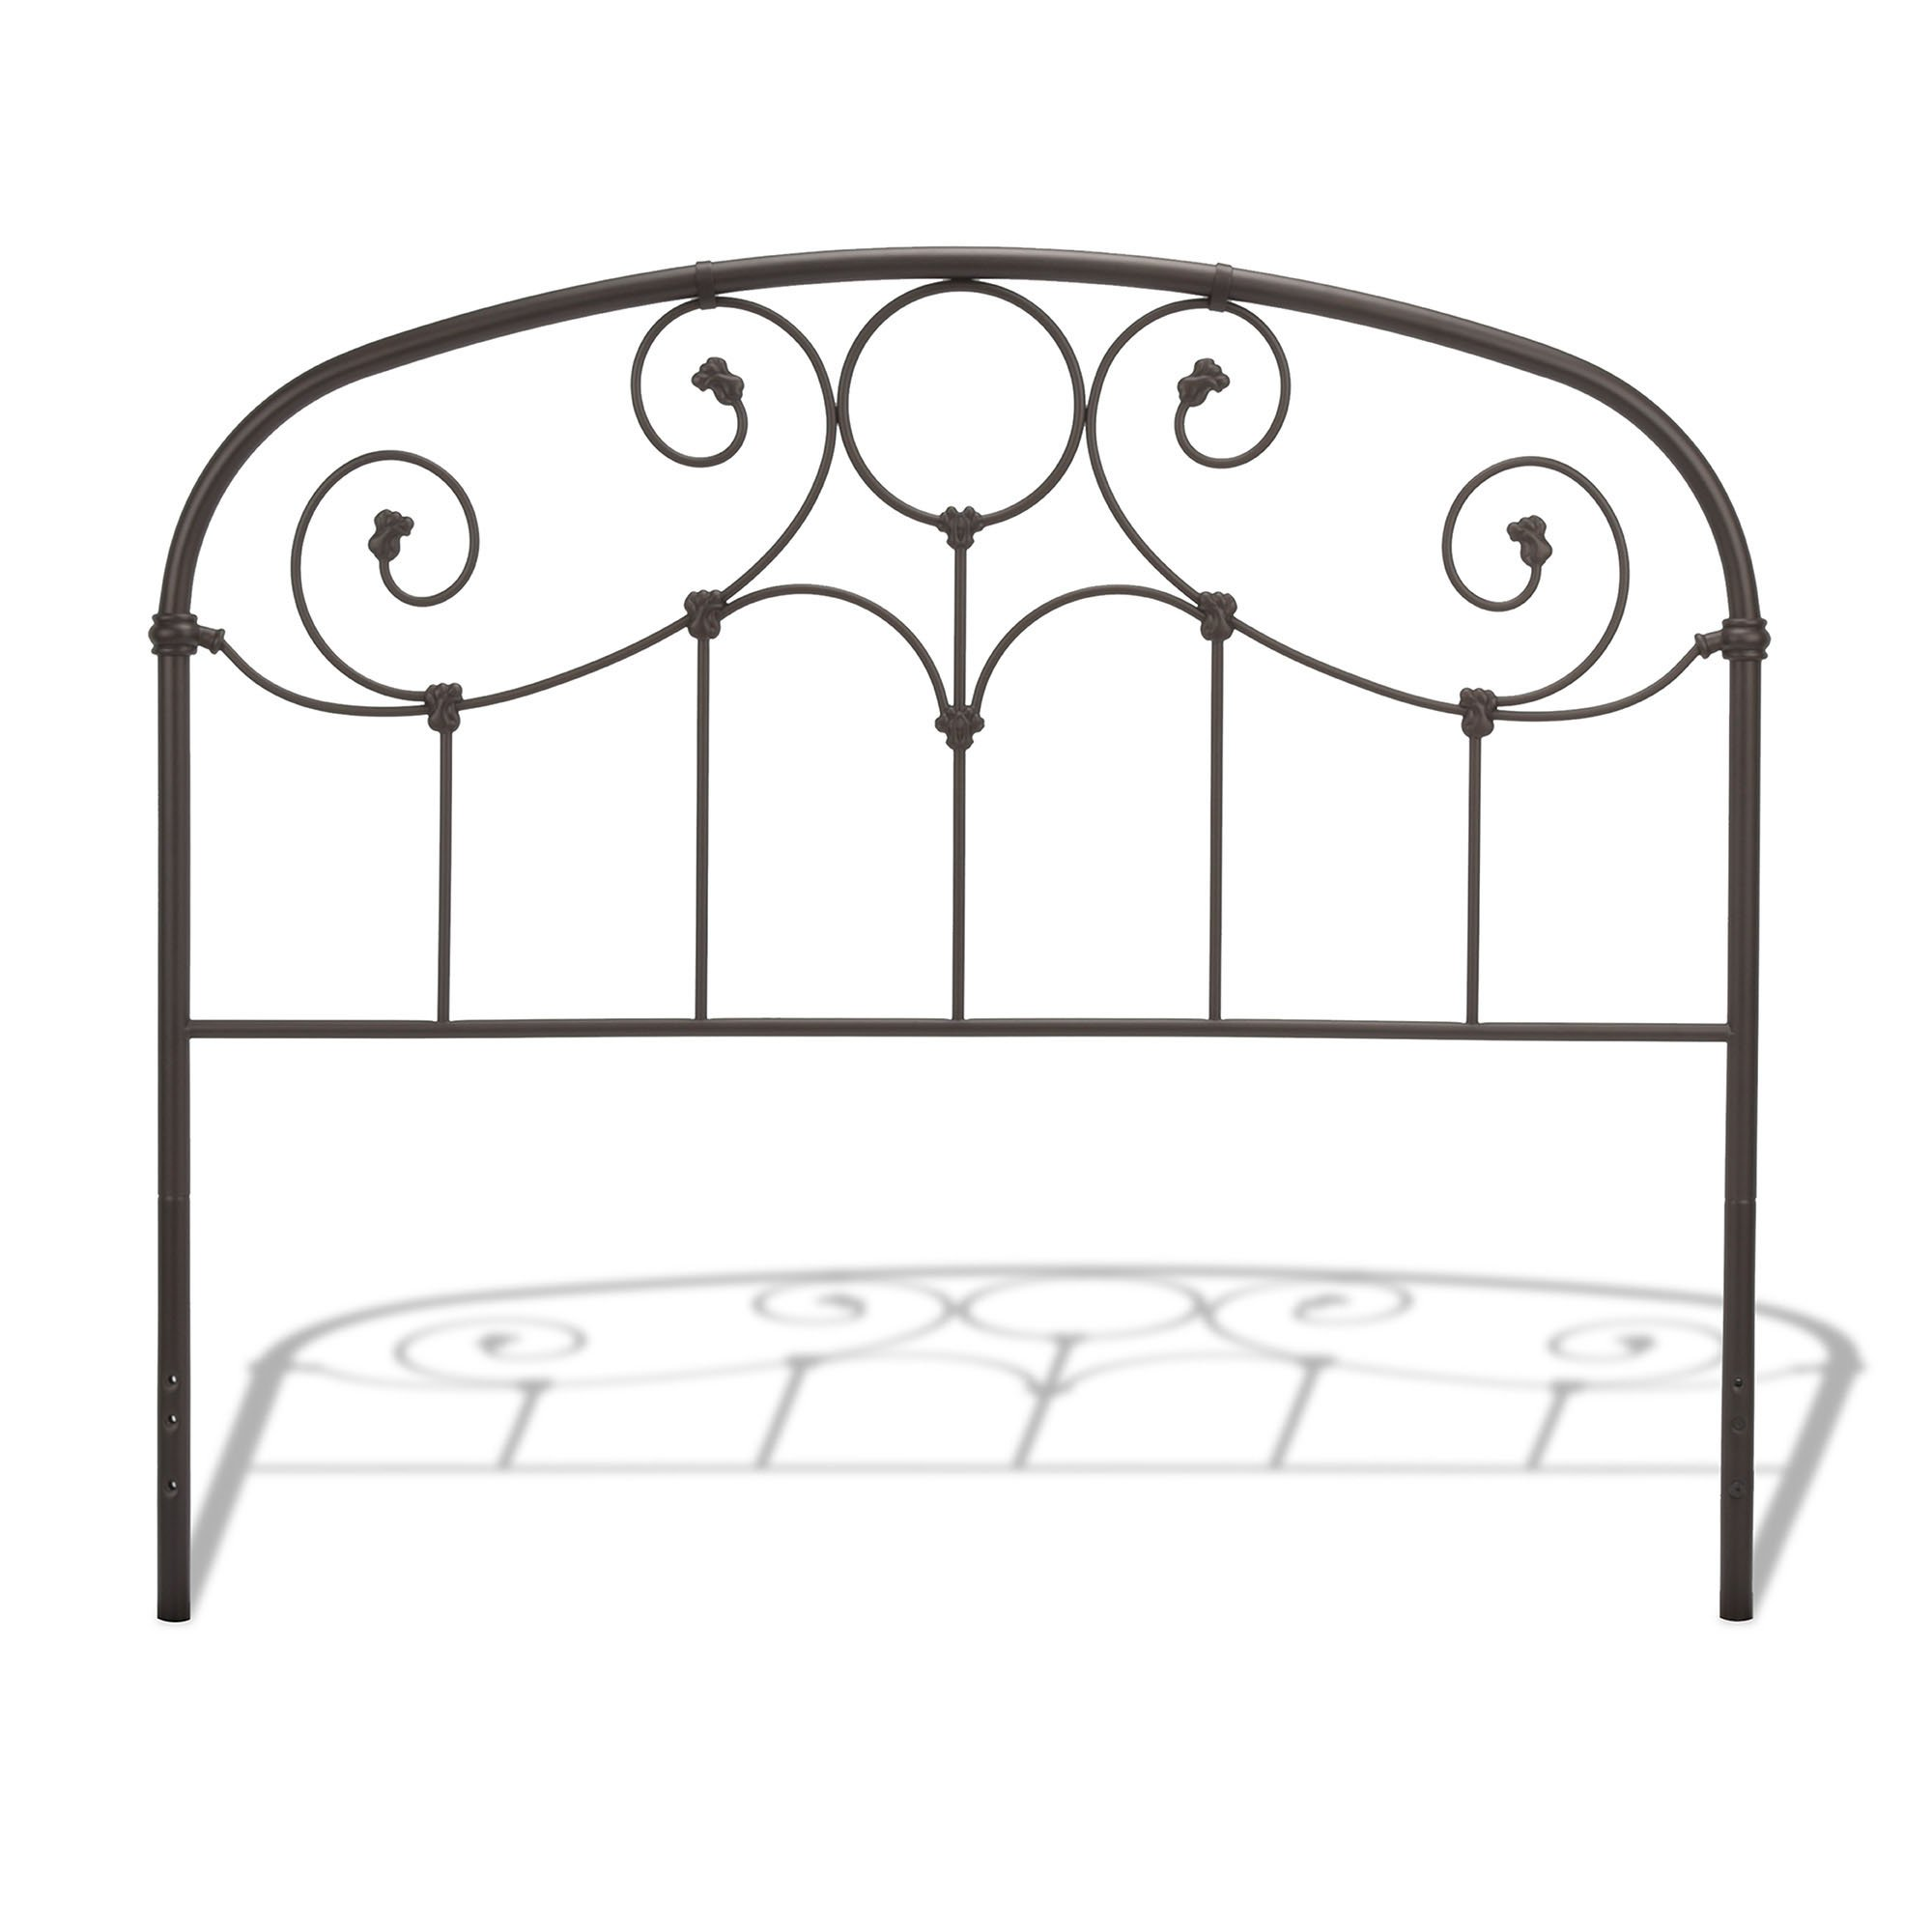 Fashion Bed Group Grafton Metal Headboard with Scrollwork Design and Decorative Castings, Rusty Gold Finish, Twin